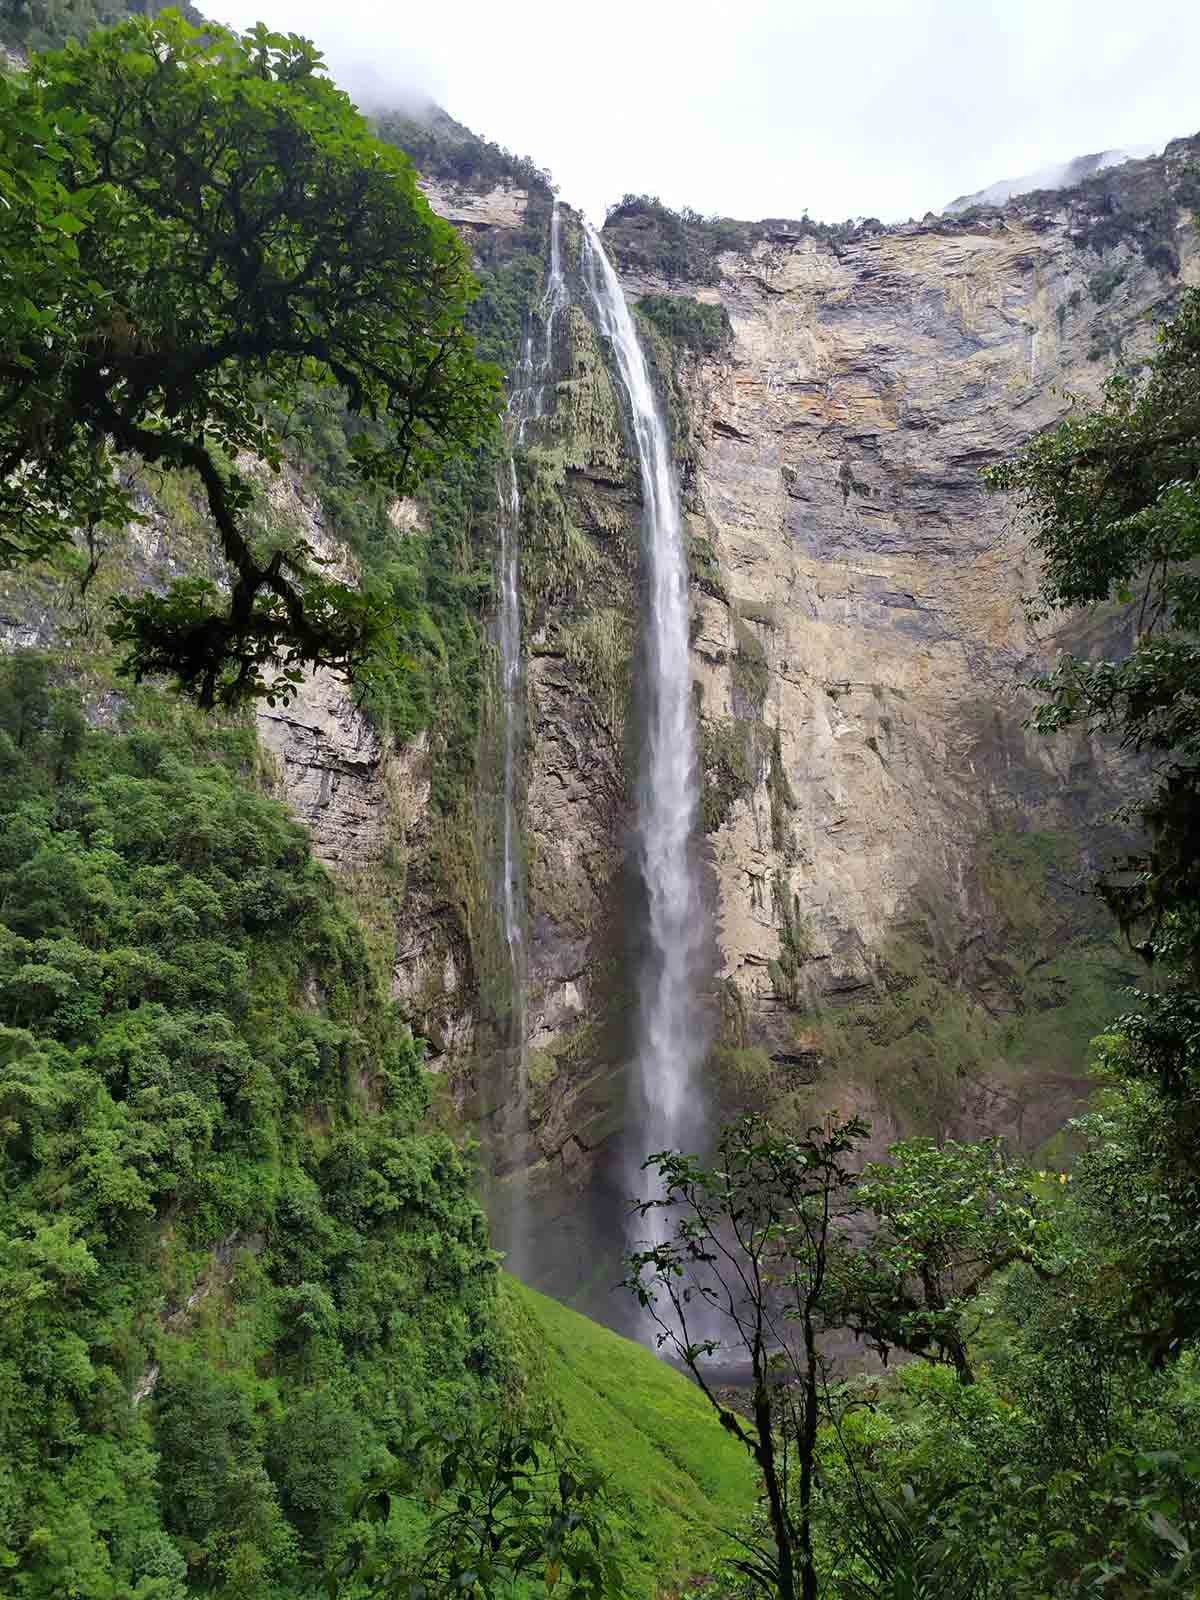 The Gocta Waterfall is a tall fall in the confluence of the Andes and Amazon.